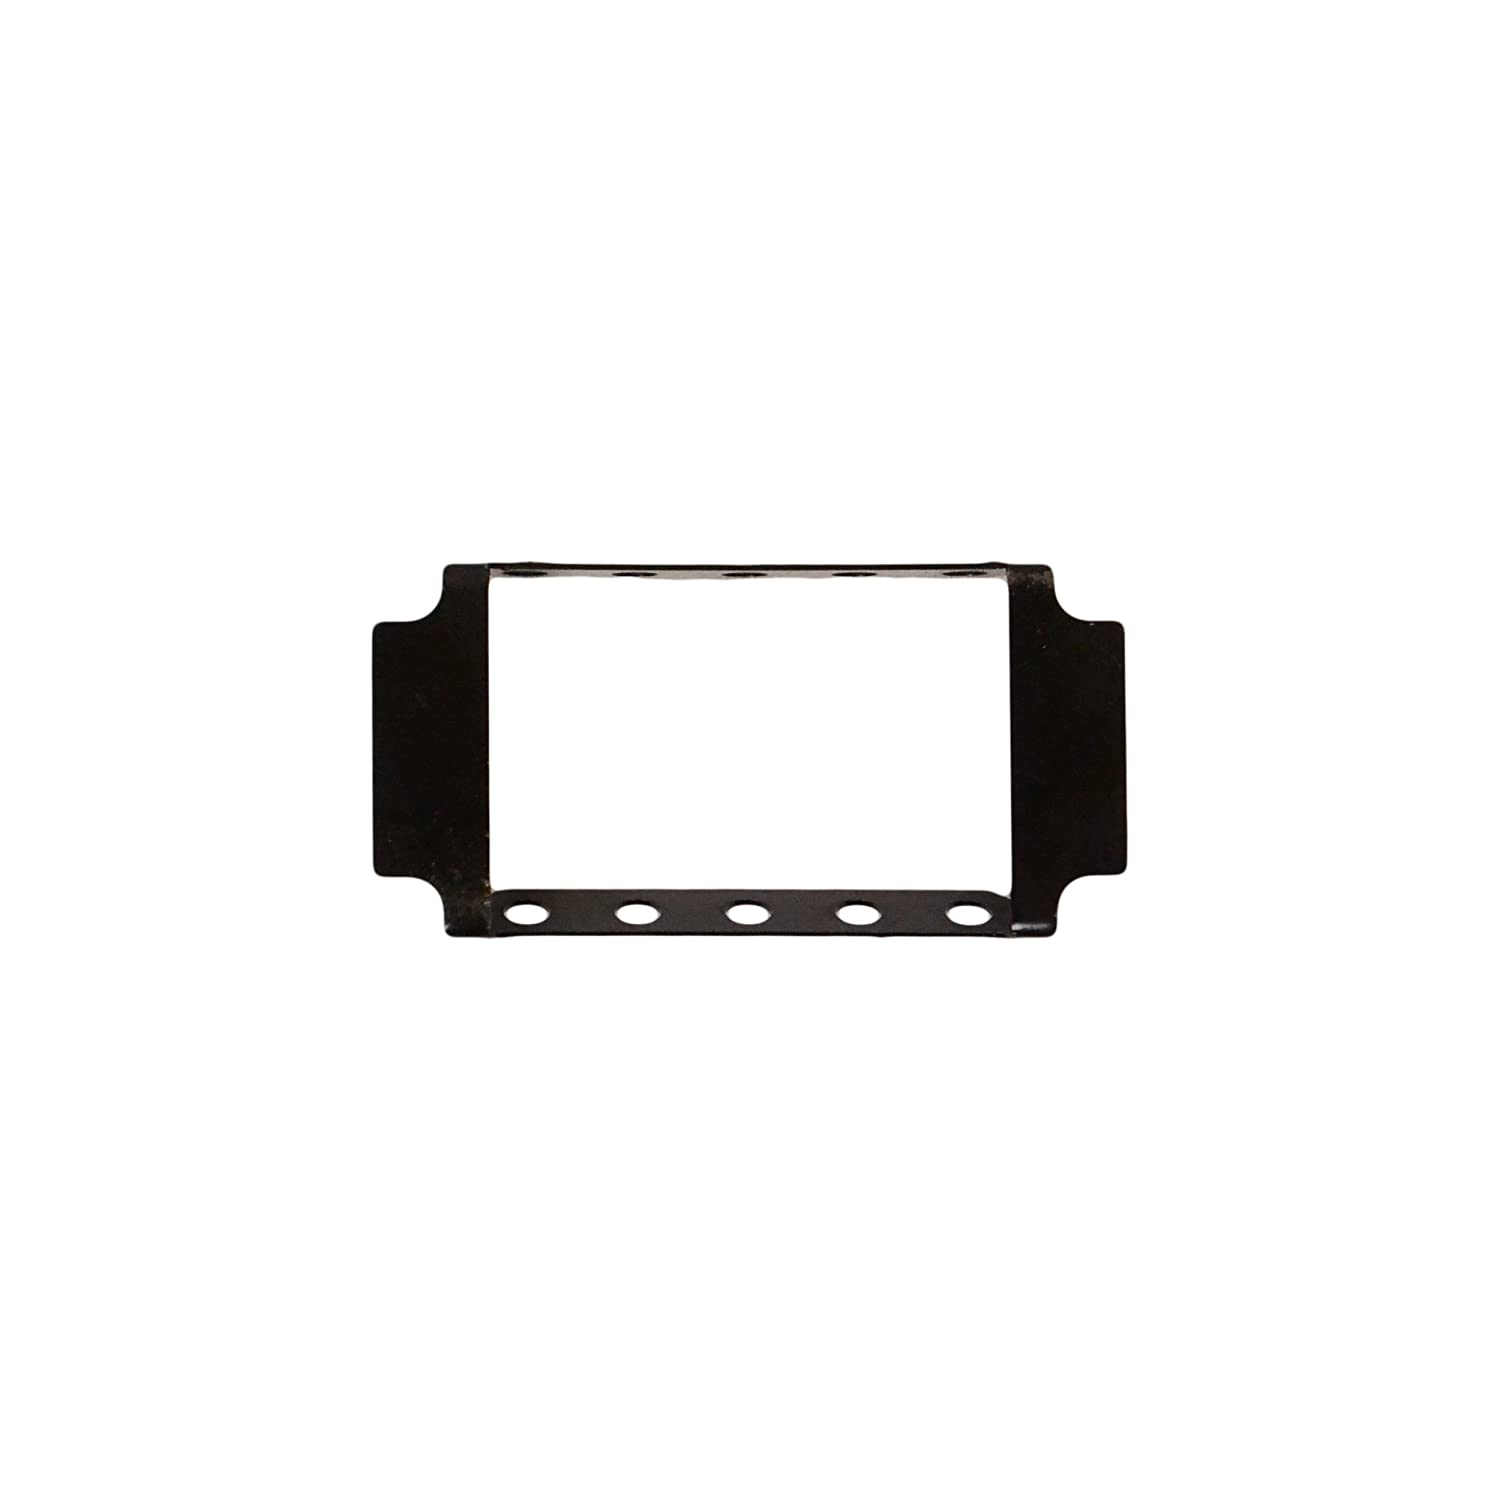 Winnebago Industries 122566-03-02B Clearance Light Bracket